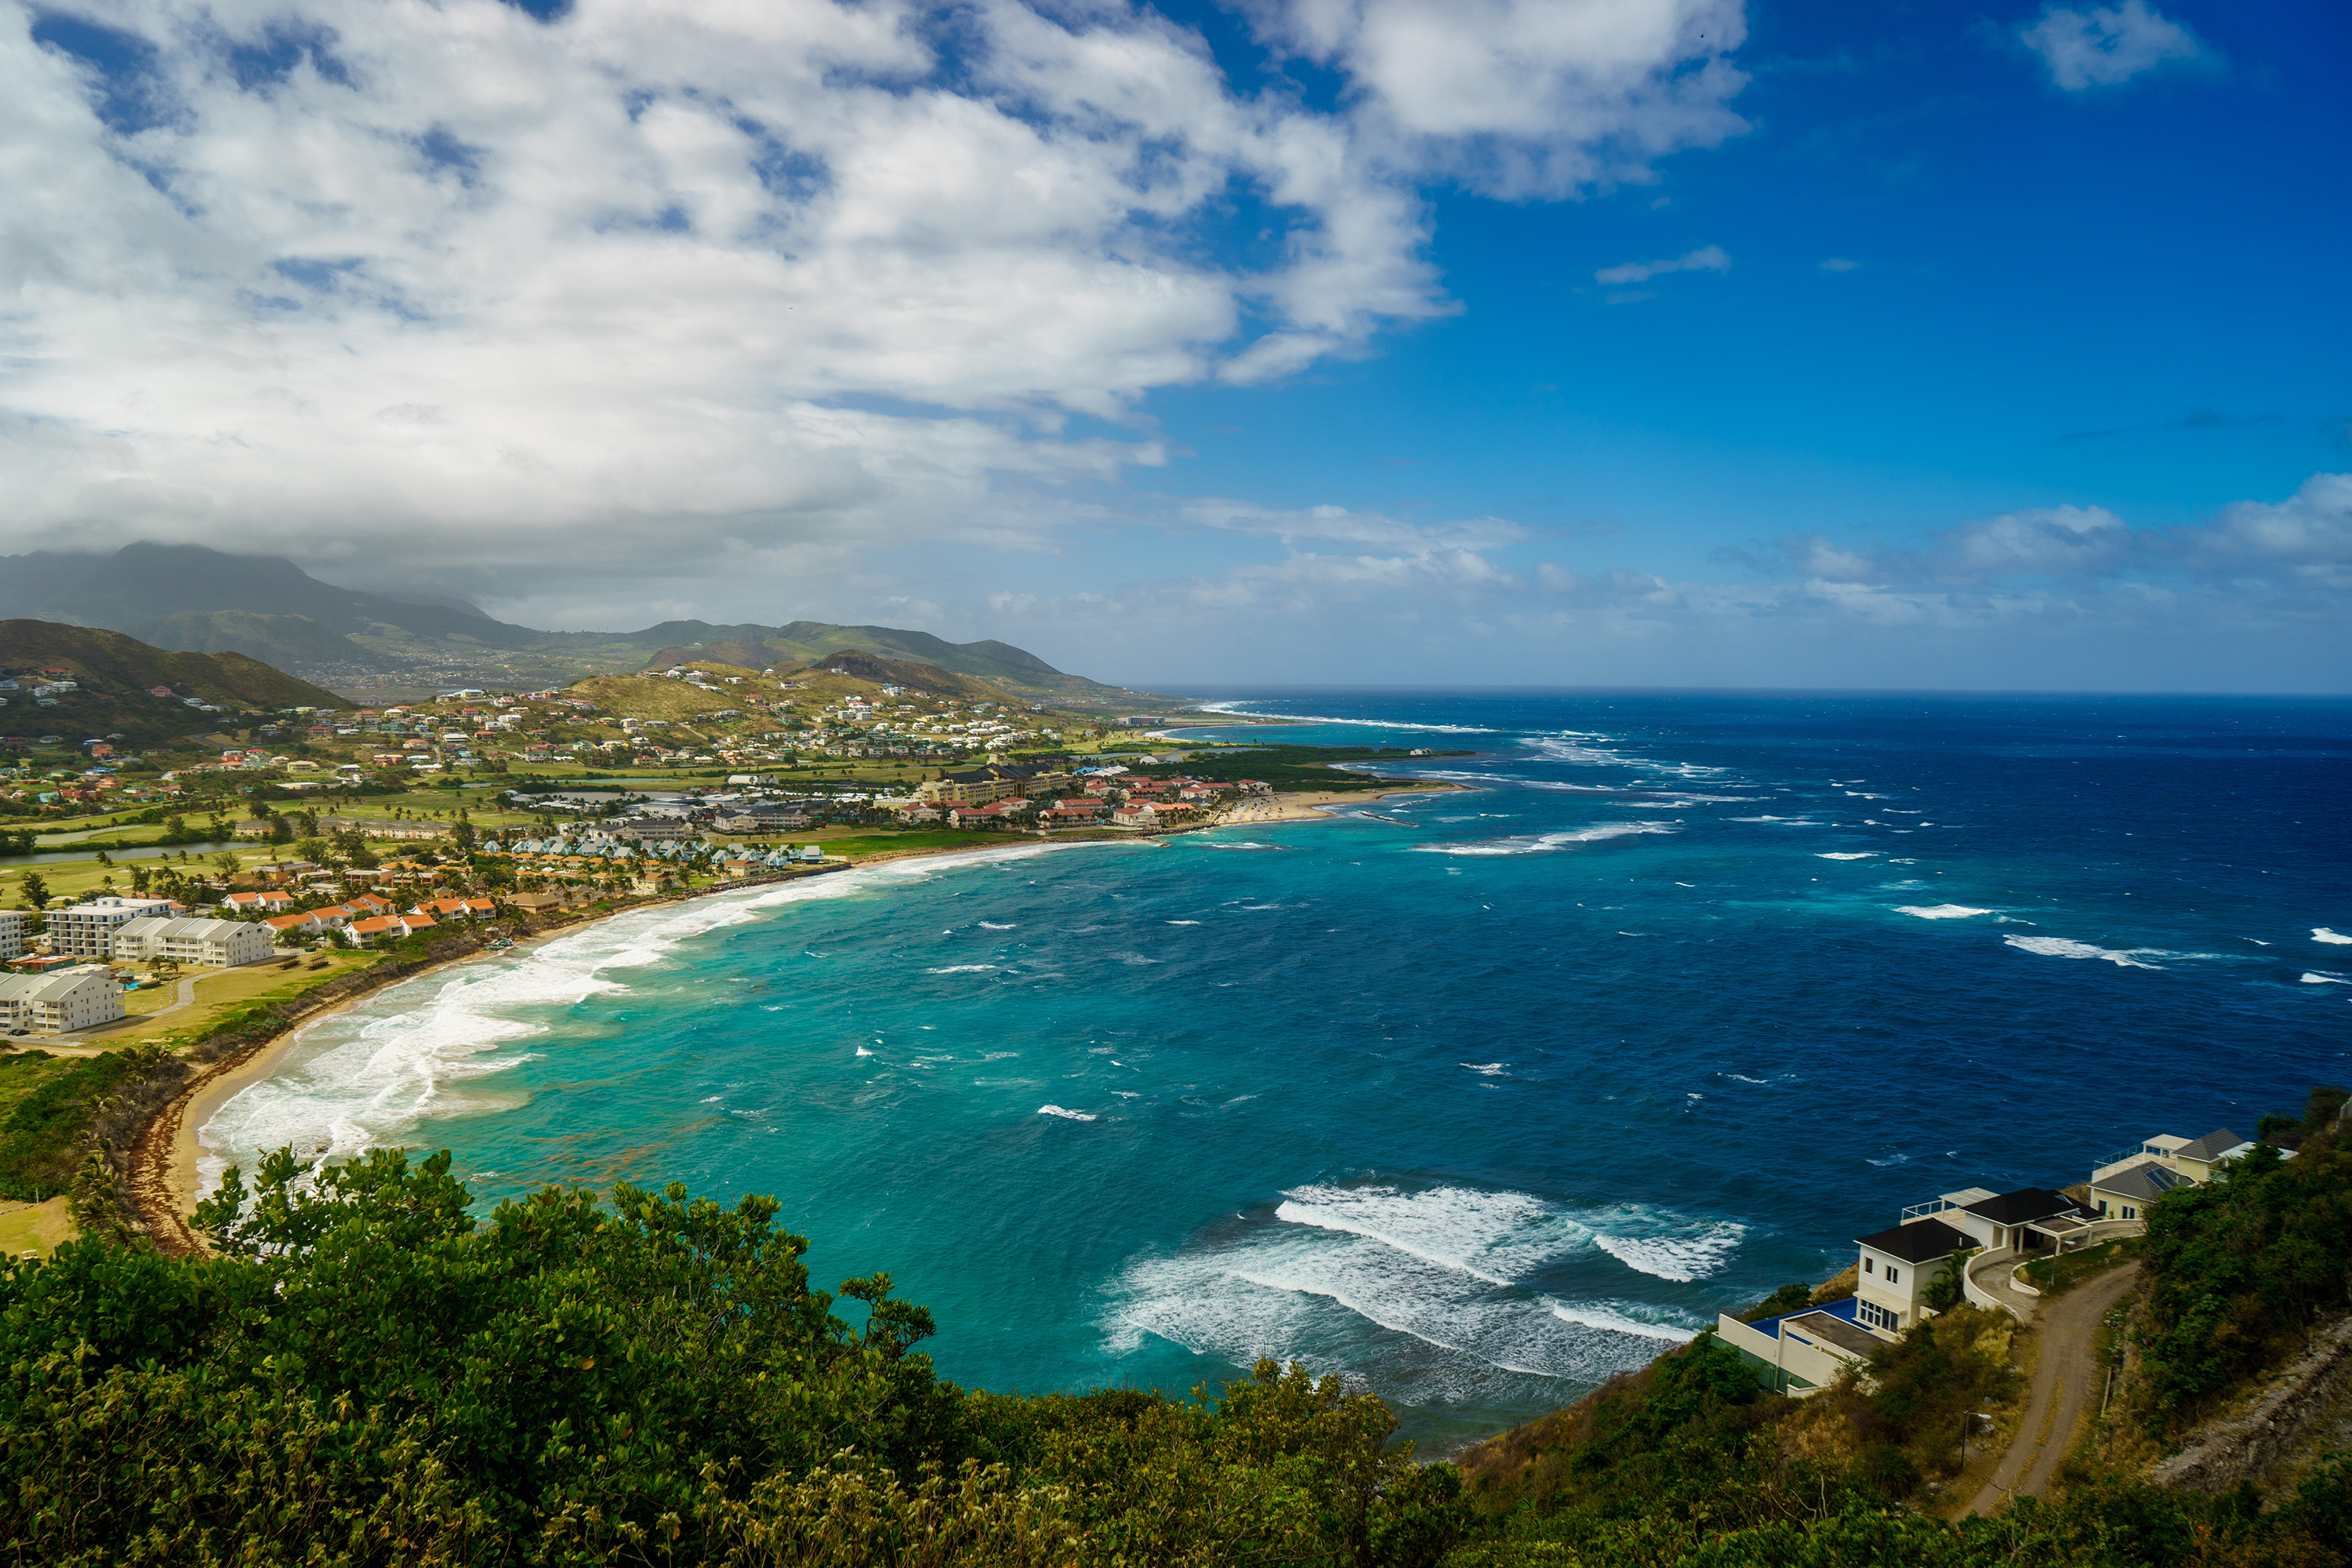 view-st-kitts-island-with-residential-area-beach-foreground-lush-green-hills